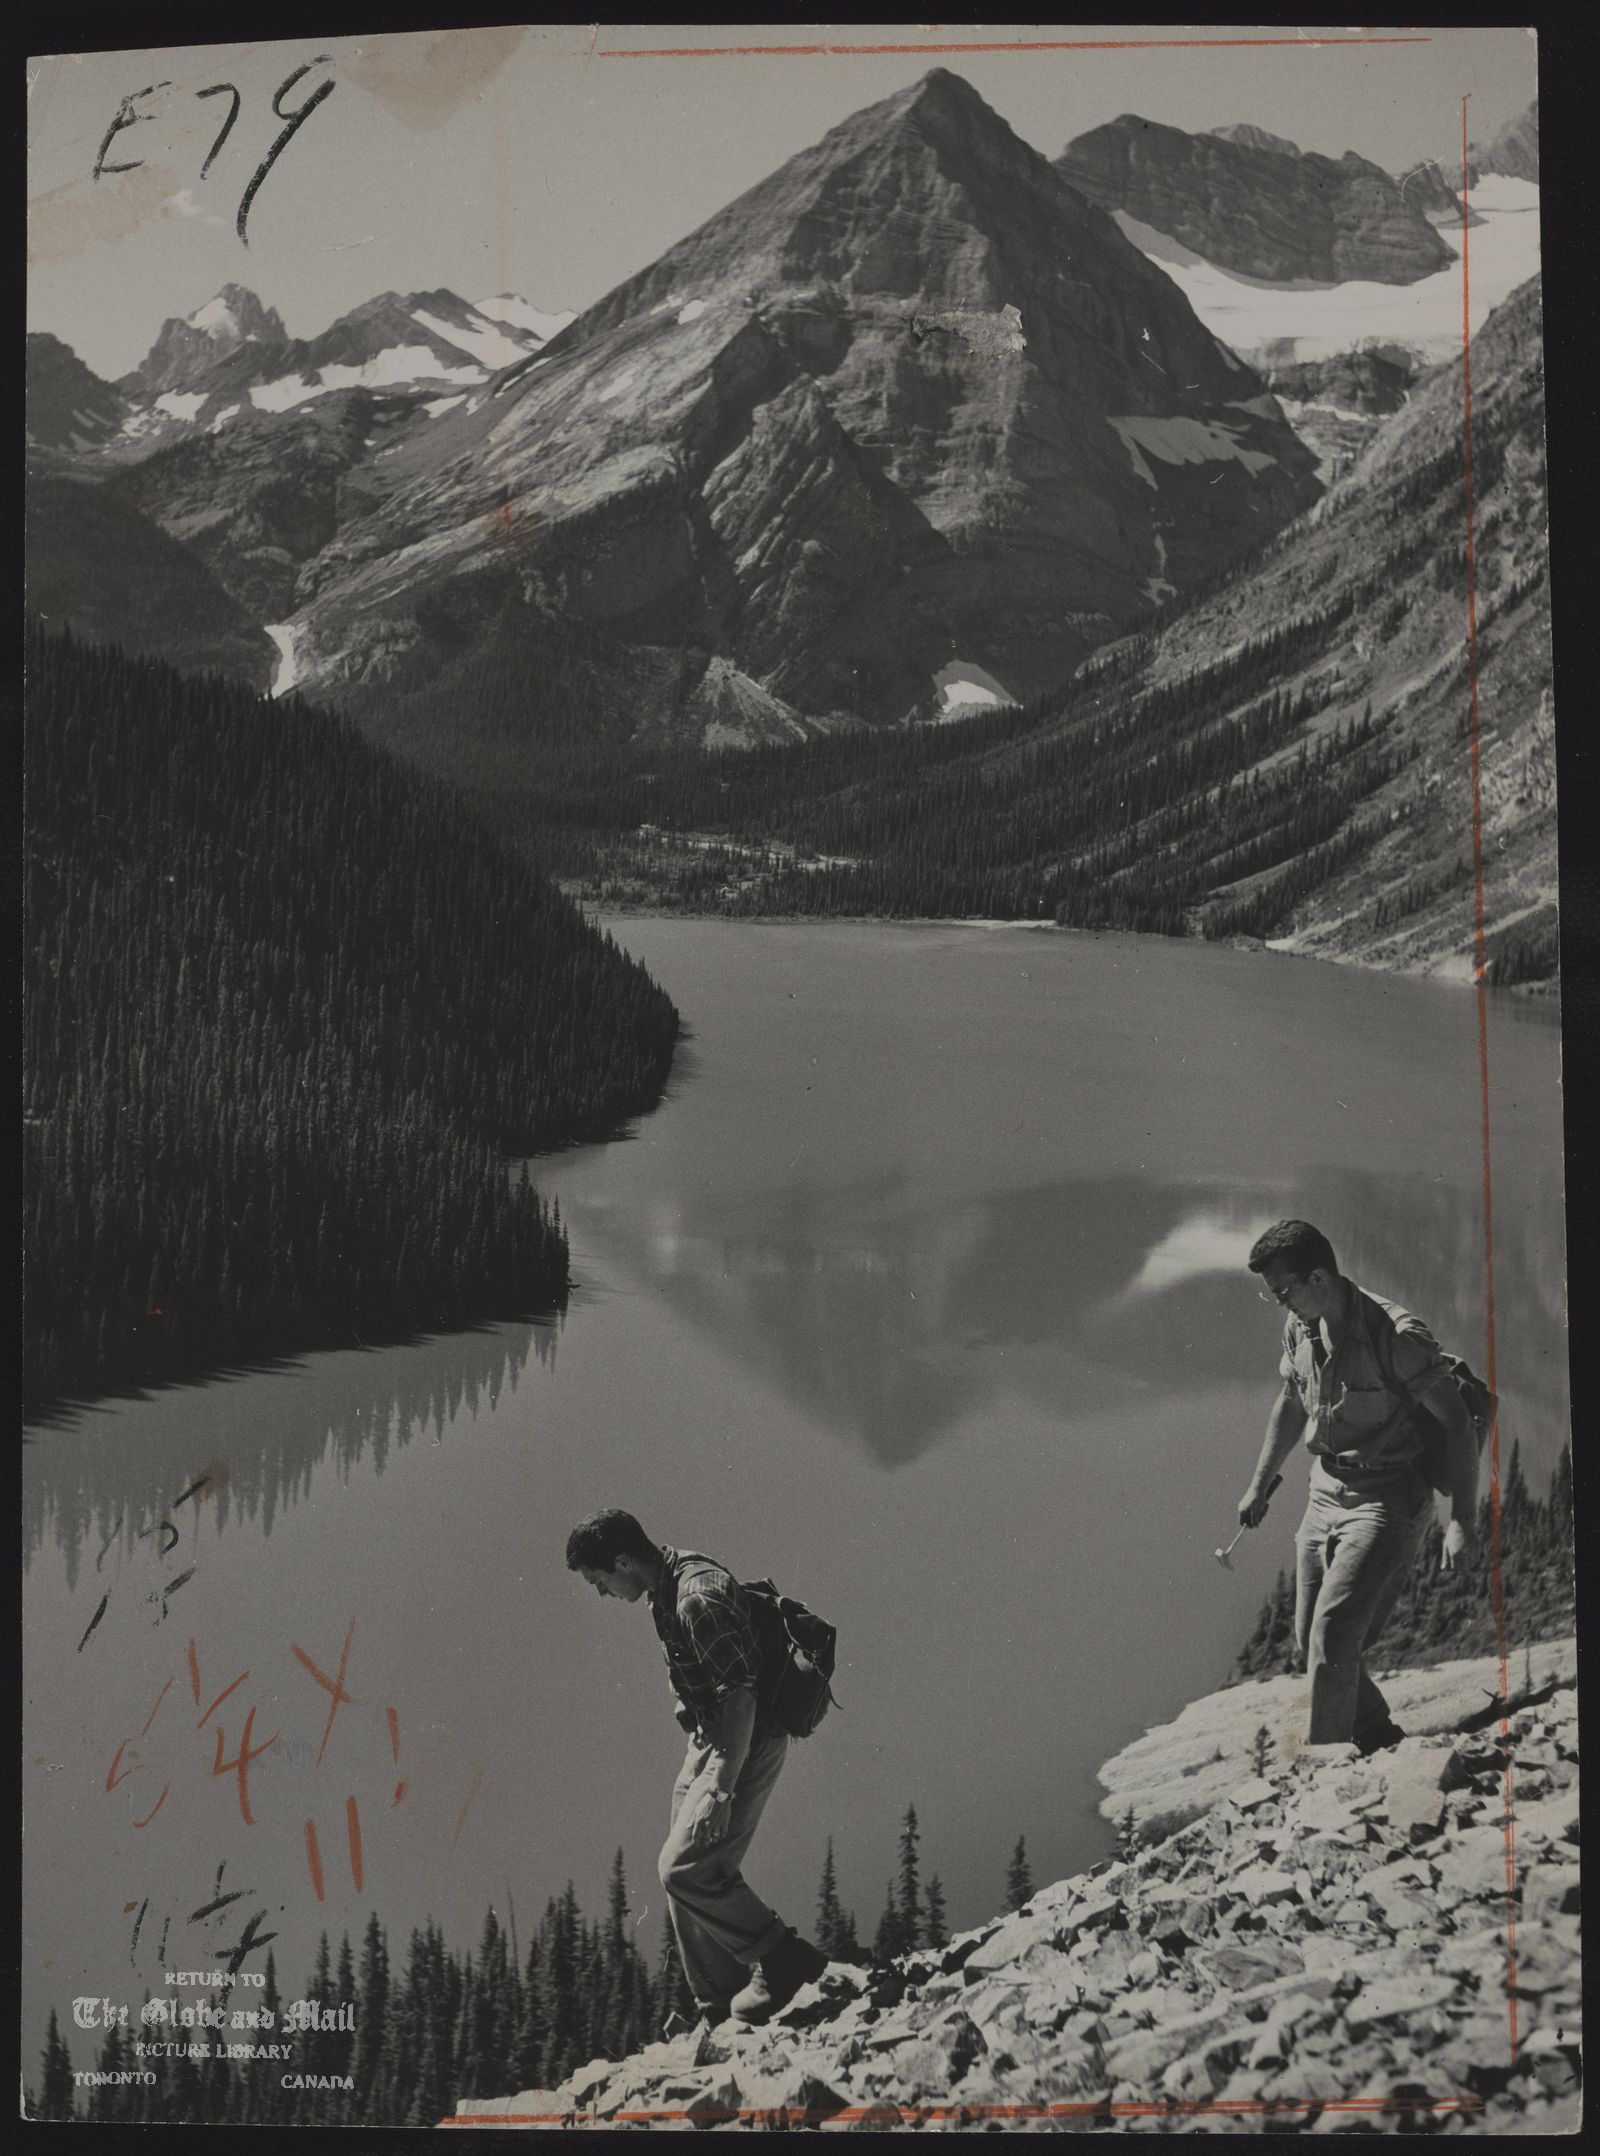 ROCKEY MOUNTAINS The Big, Broad Land. Geologists scale Rockies for clues to minerals, oil or gas deposits. Originally published July 1, 1959.